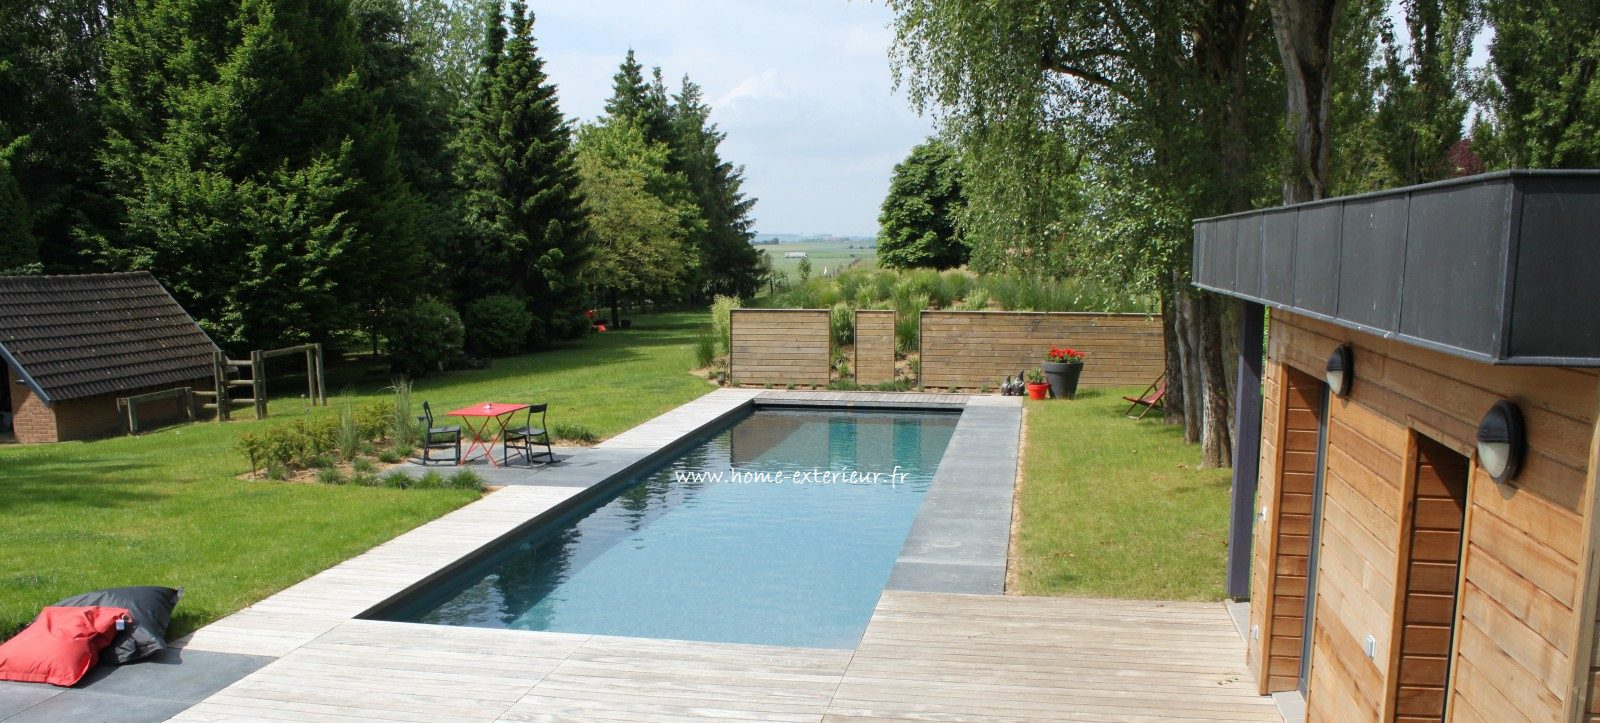 Architecte paysagiste terrasses jardins nord lille for Piscine 56